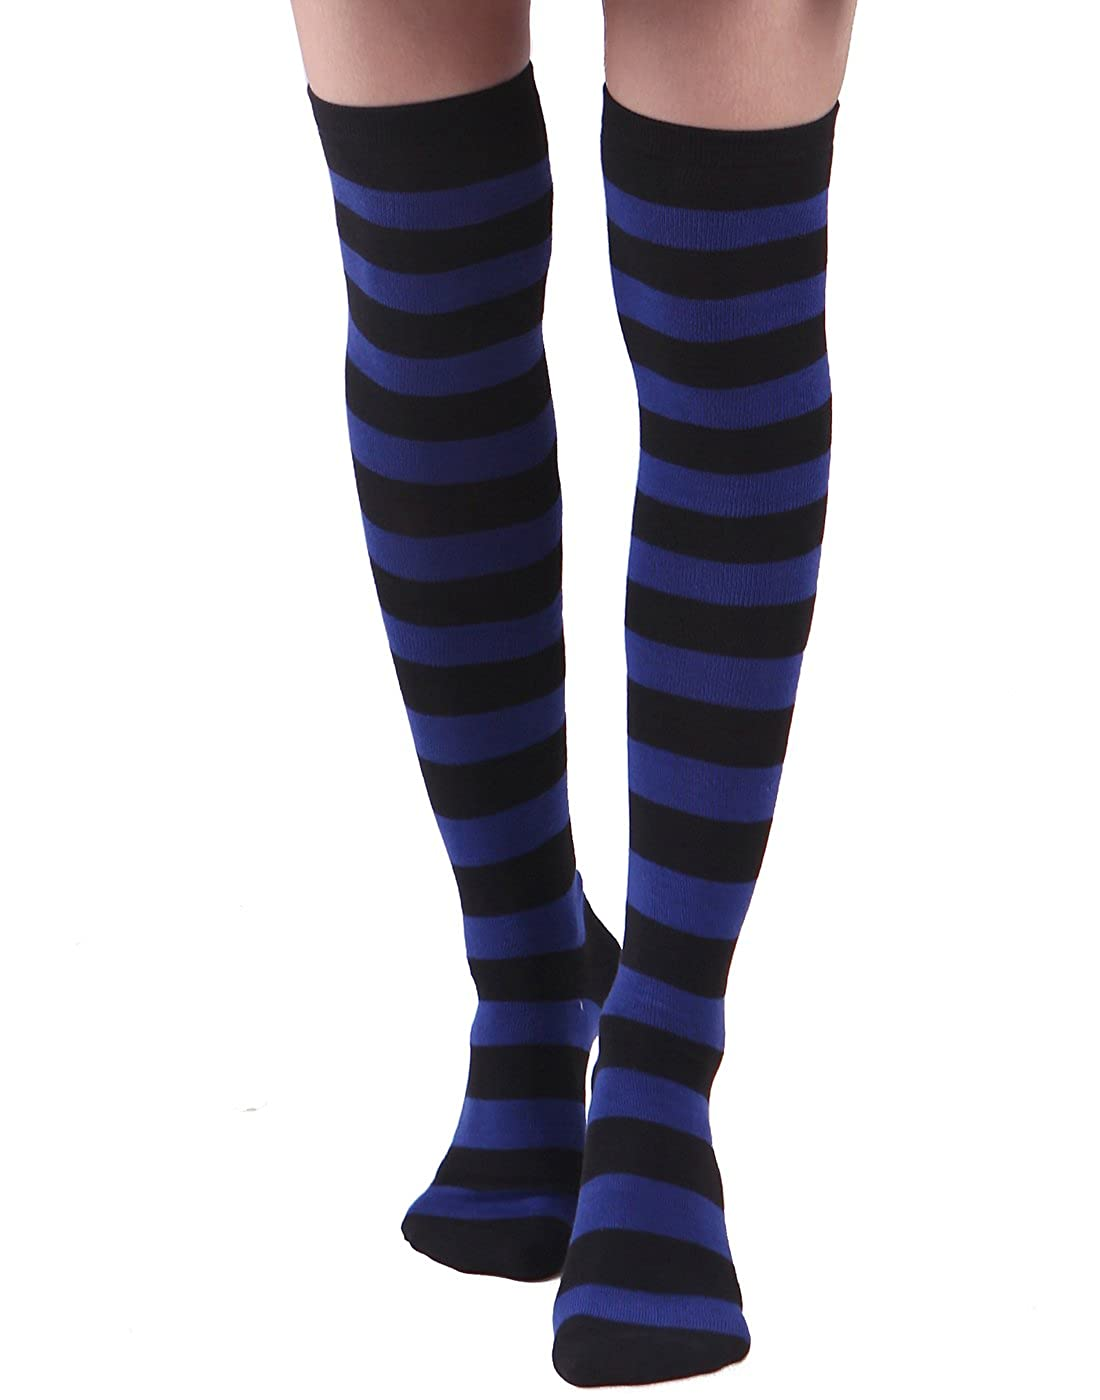 e48fec21a0e Add some color to your wardrobe with a pair of fashionably cute and sexy  thigh-high striped stockings. Poly-cotton blend is both soft and  breathable  ...